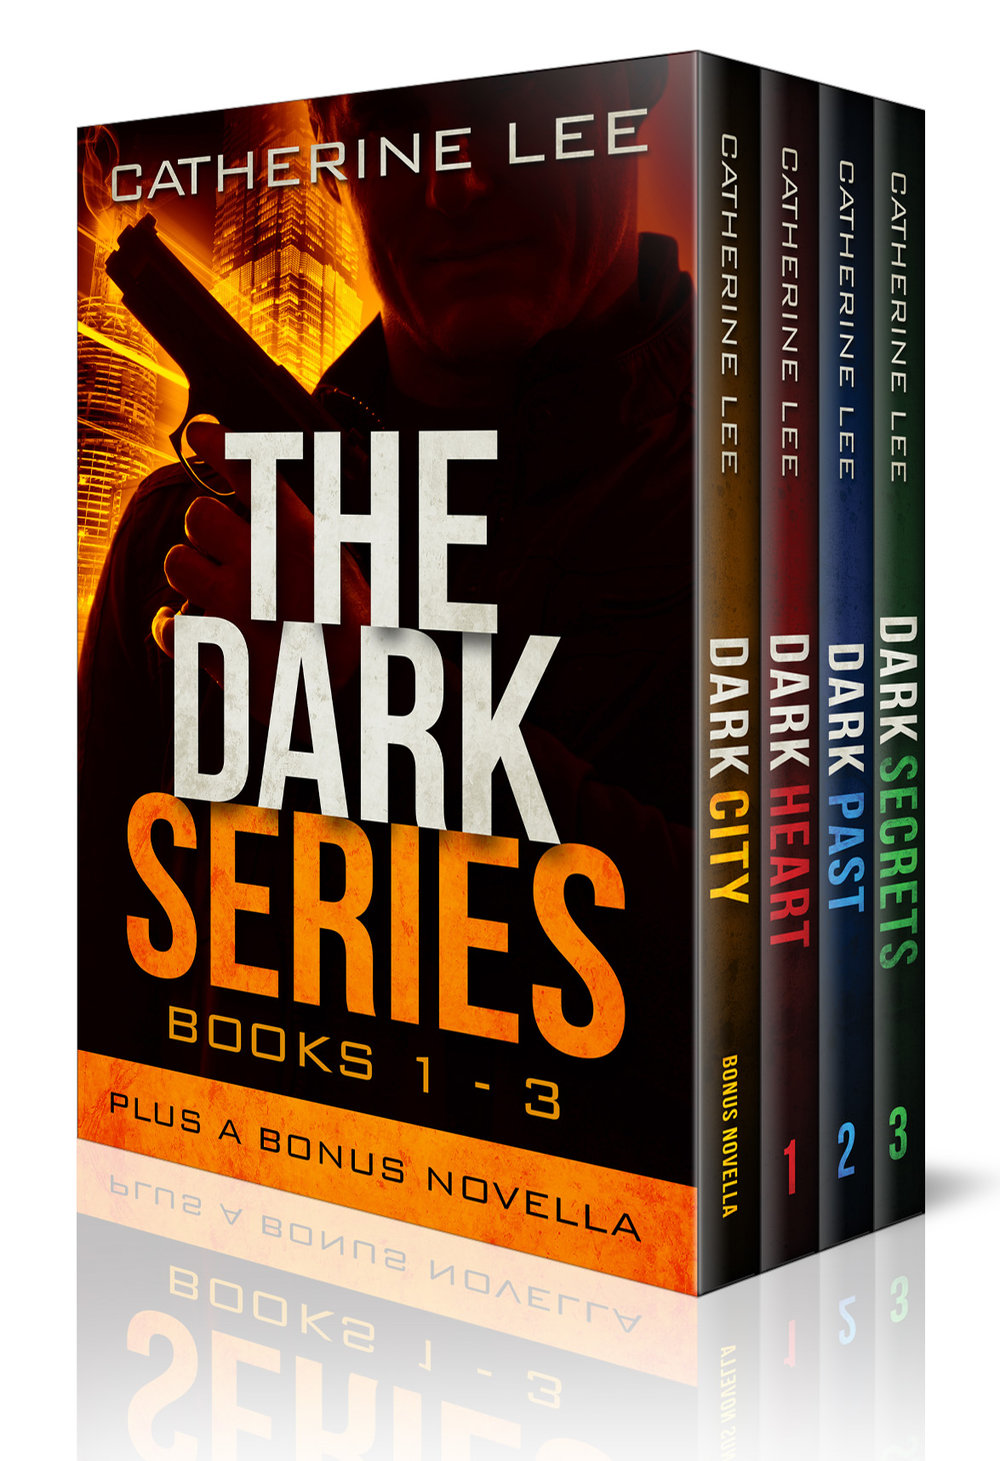 The-Dark-Series-Boxset-3D-002.jpeg